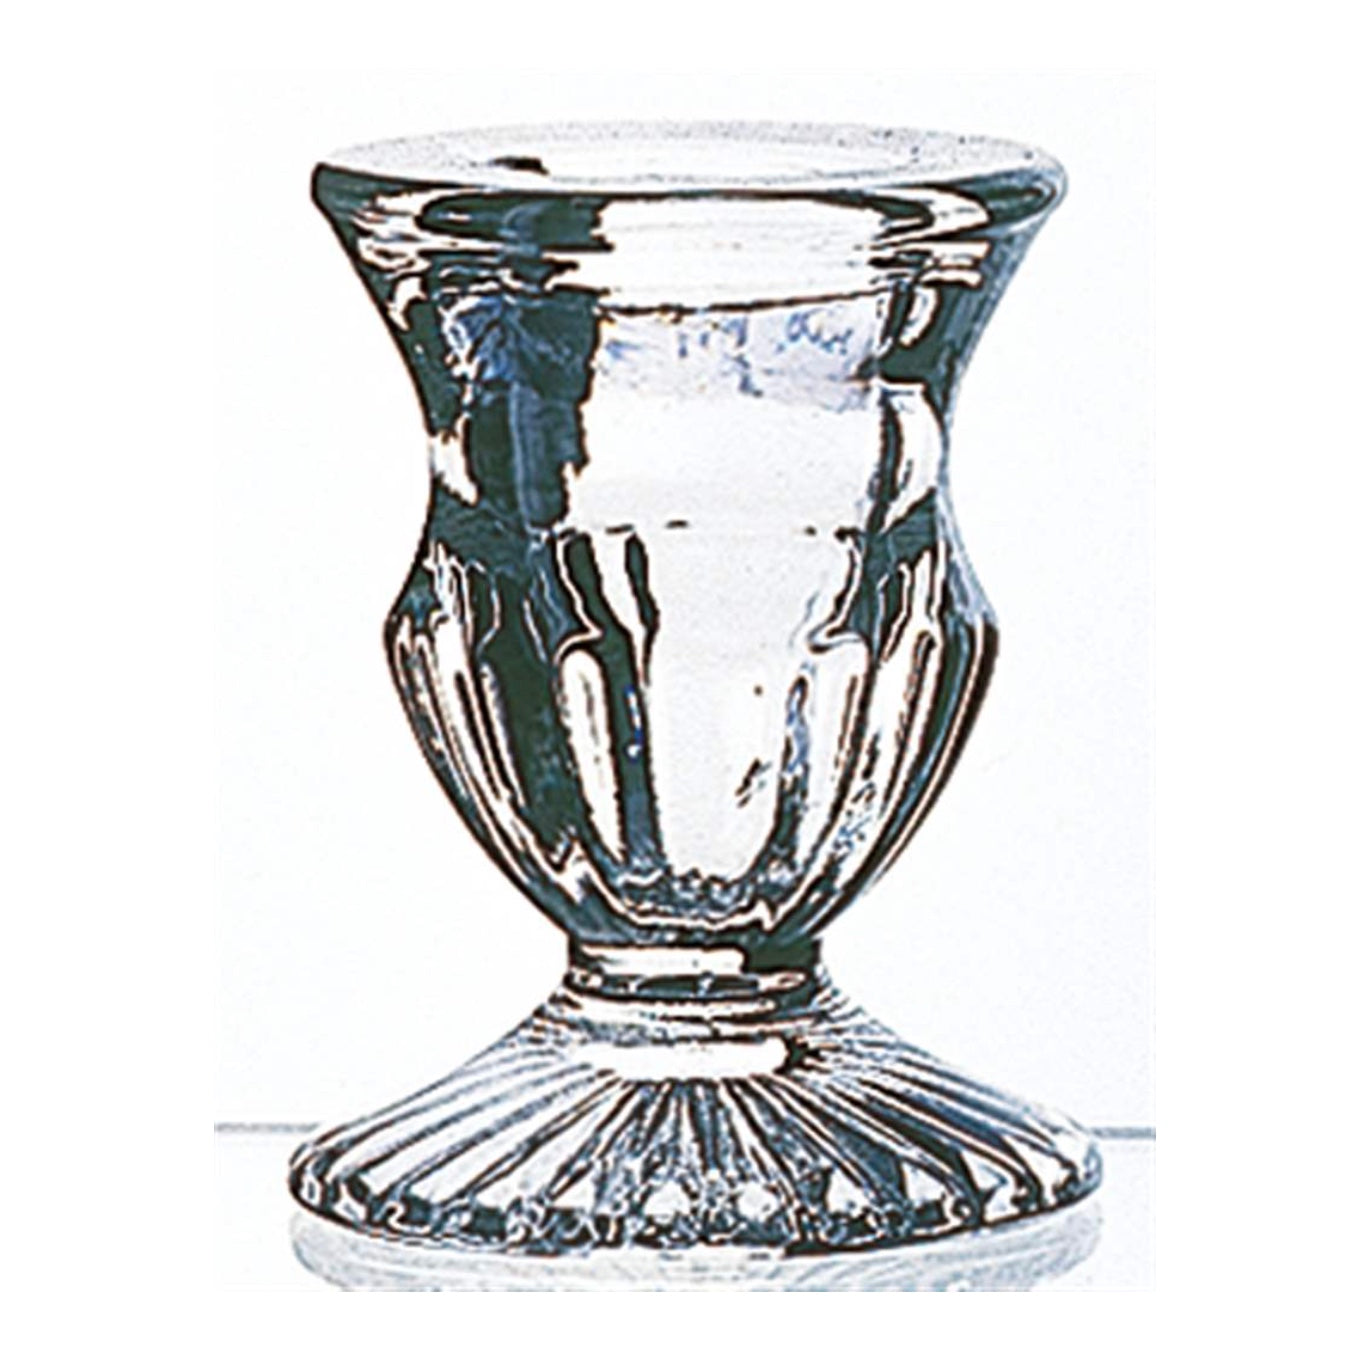 La Rocher Candle Holder-Glassware-PG-Premier Gift -La Rochere-Putti Fine Furnishings